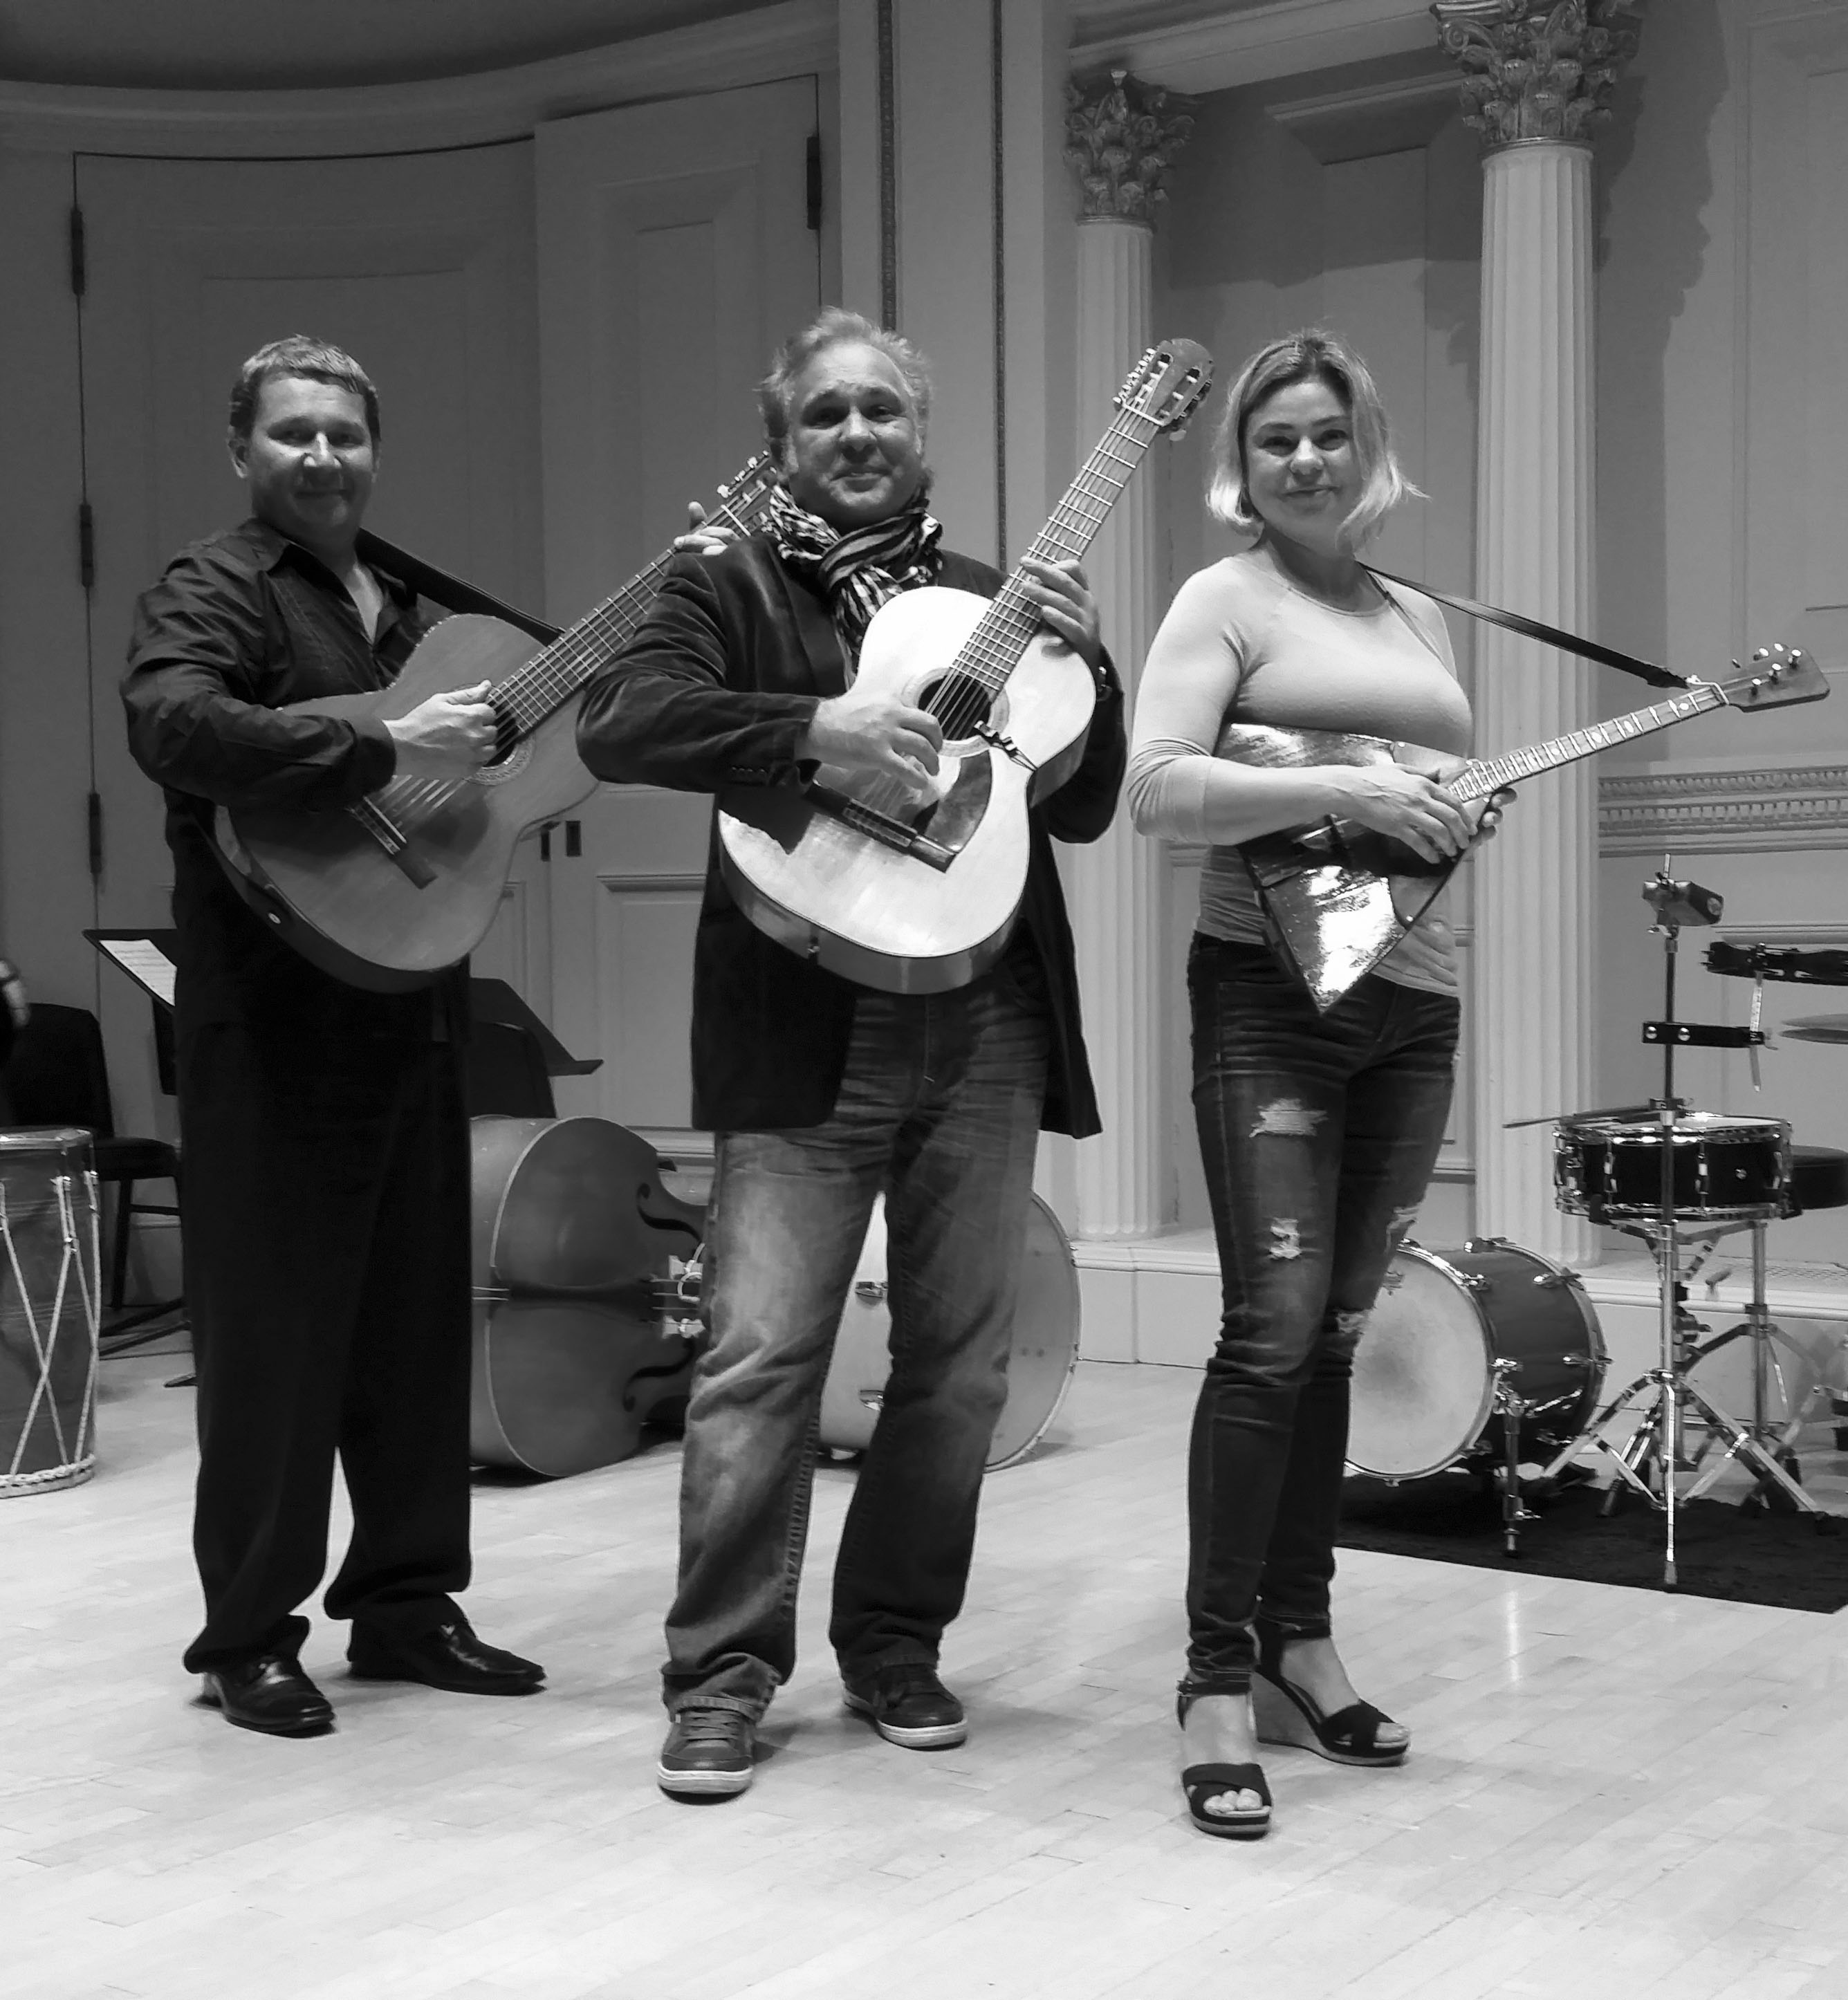 Moscow Gypsy Army, Mikhail Smirnov, Vasily Yankovich-Romani, Elina Karokhina, rehearsal at the Carnegie Hall in New York City